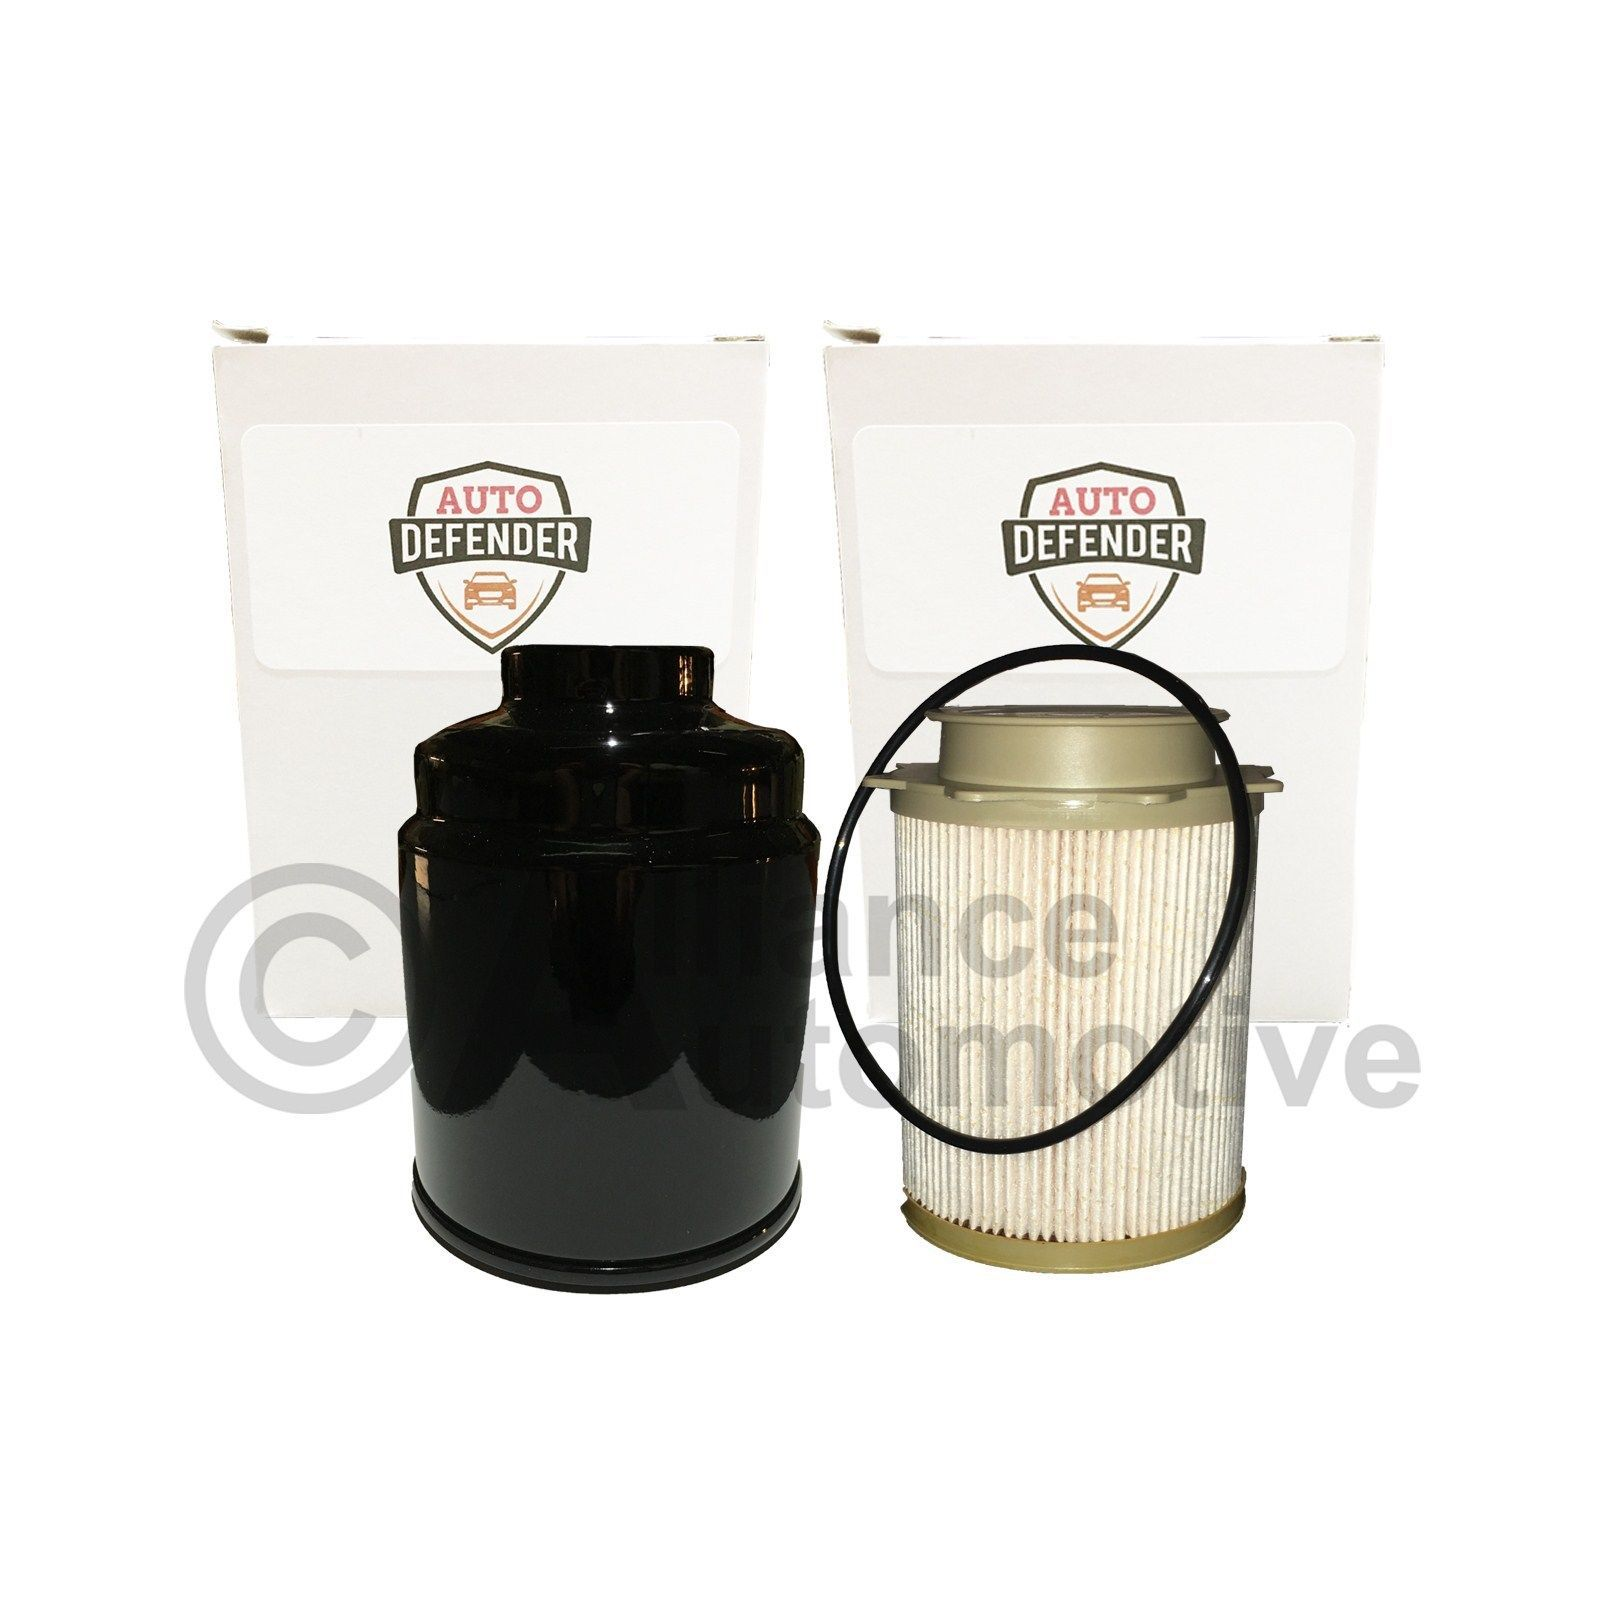 dodge ram 6 7l fuel filter kit for 2013-2016 cummins diesel front & rear  filter #filter #front #rear #diesel #cummins #fuel #dodge